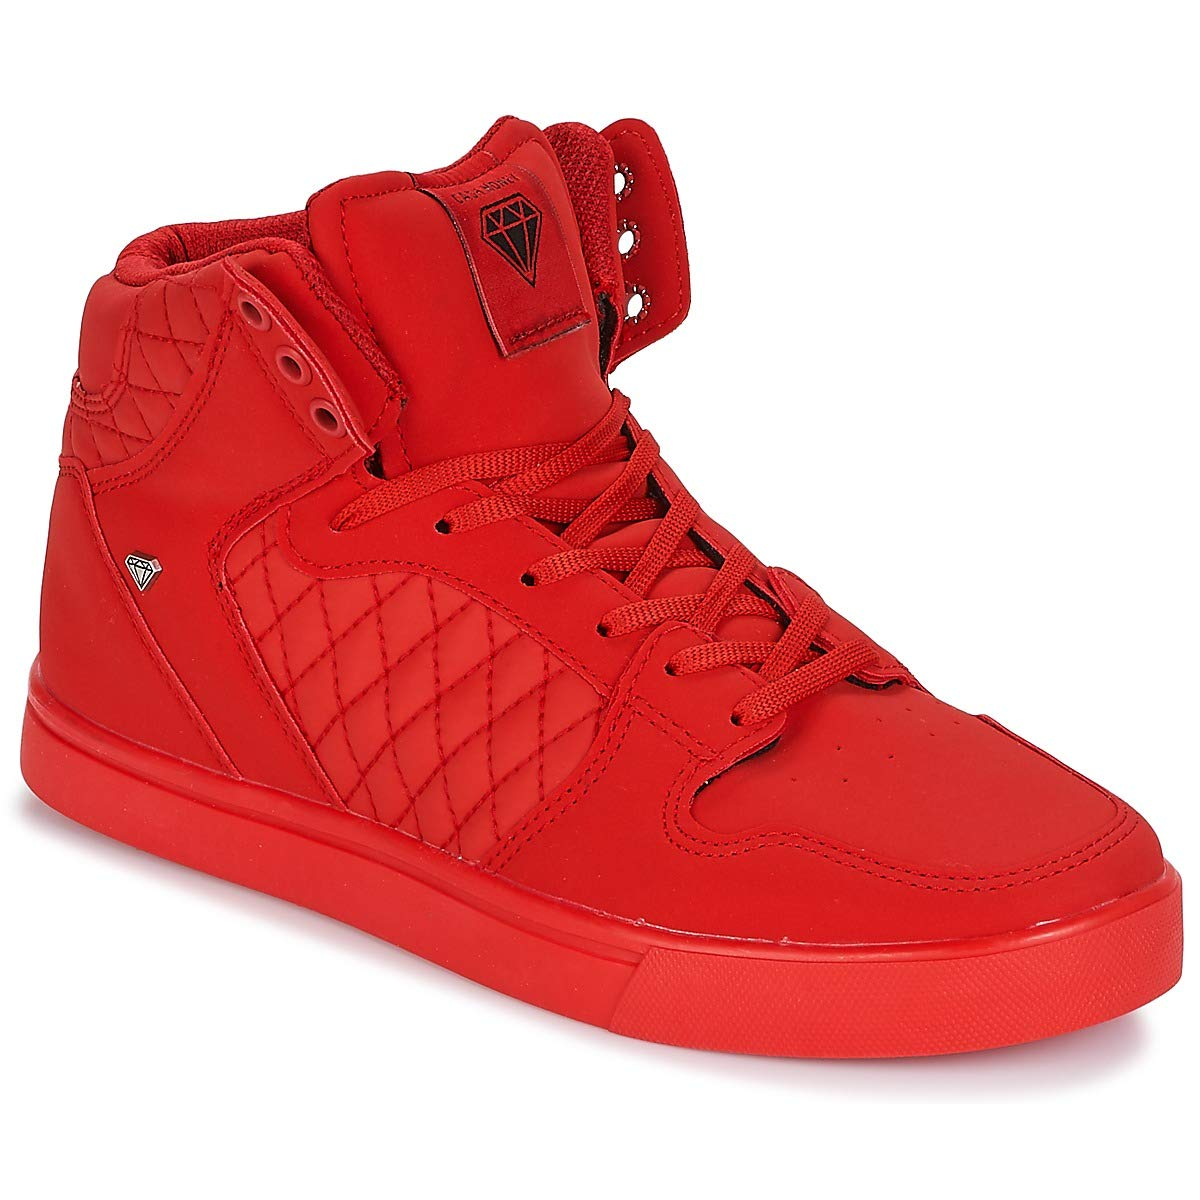 Cash Money CMS13 JAILOR Turnschuhe Herren Rot Turnschuhe High